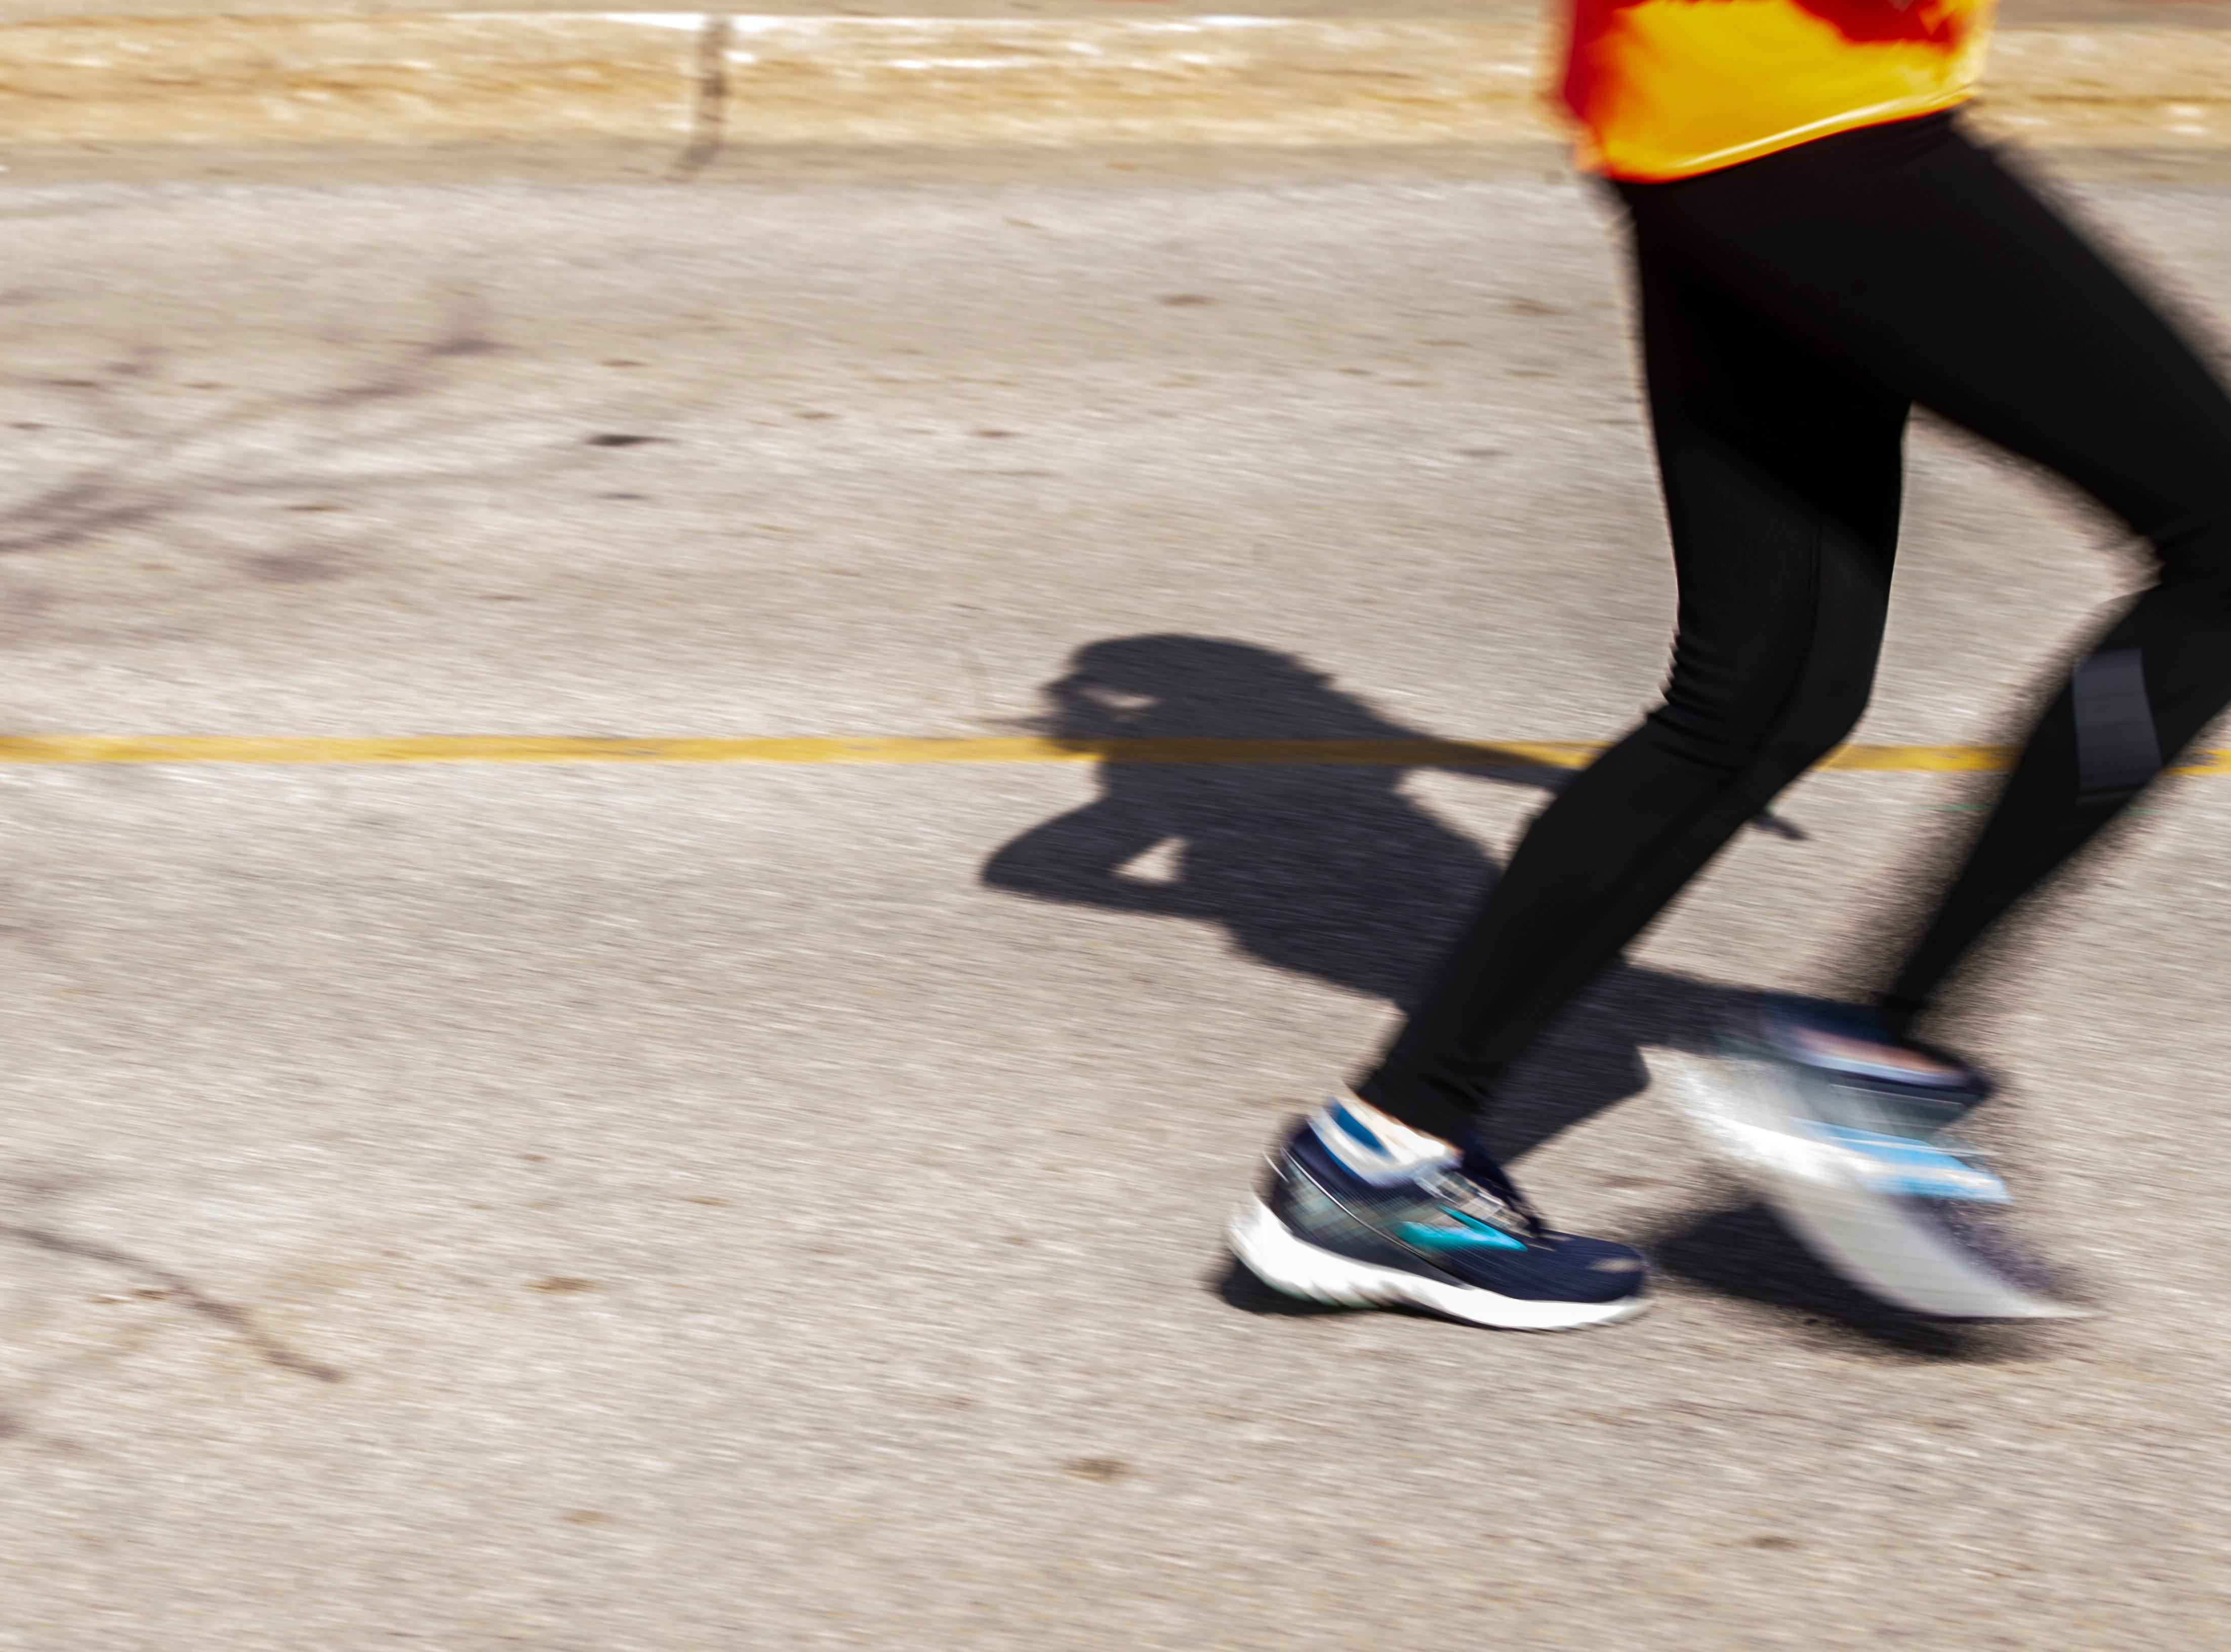 A shadow is seen as a runner nears the finish line on the pavement during the second annual Run CRANDIC marathon, Sunday, April 28, 2019, along 16th Avenue SE in Cedar Rapids, Iowa.